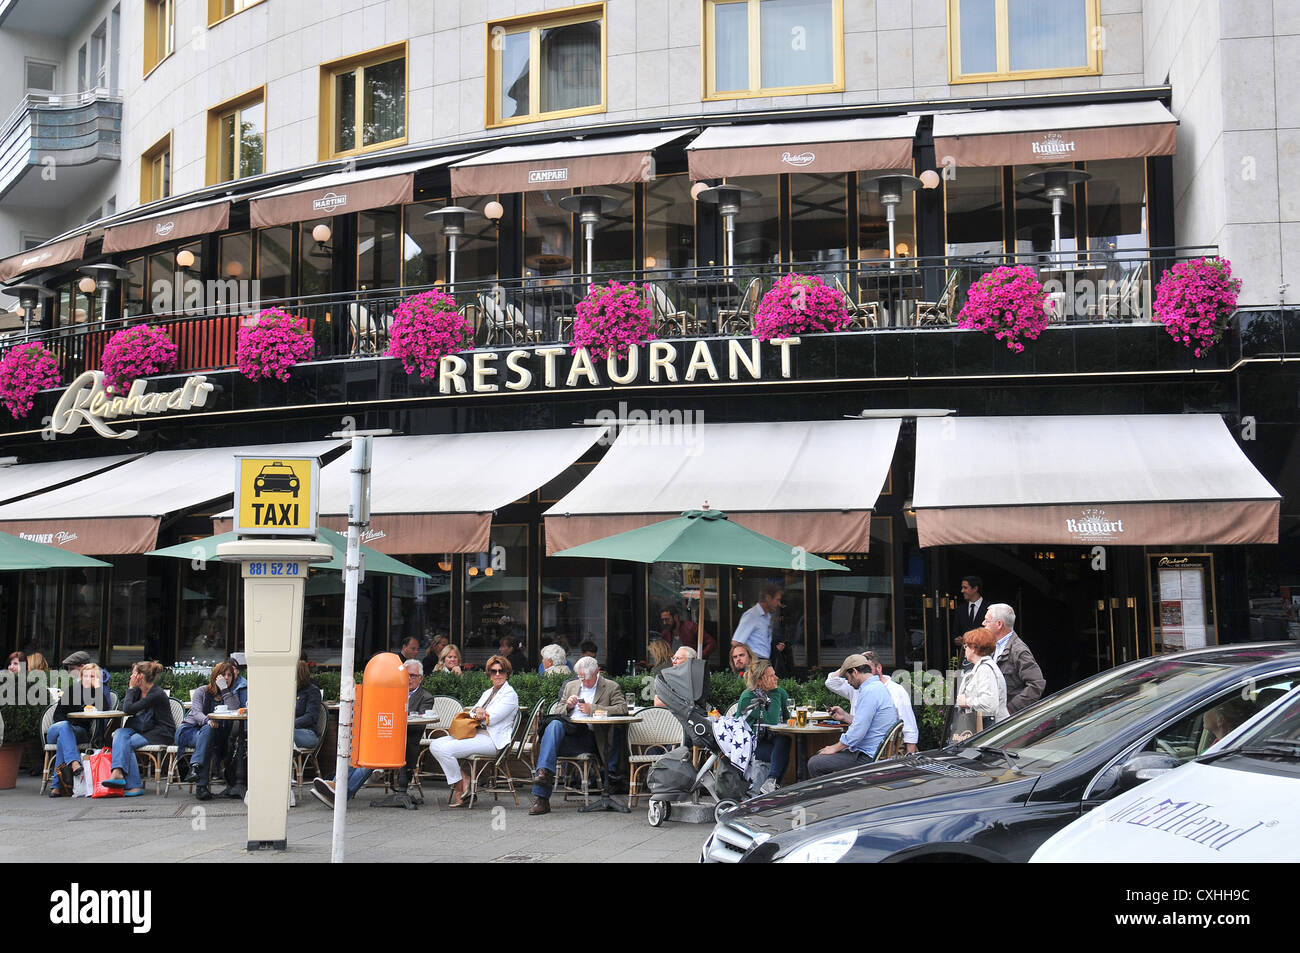 Französische Restaurants Berlin Prenzlauer Berg Restaurant Berlin Germany Stock Photos Restaurant Berlin Germany